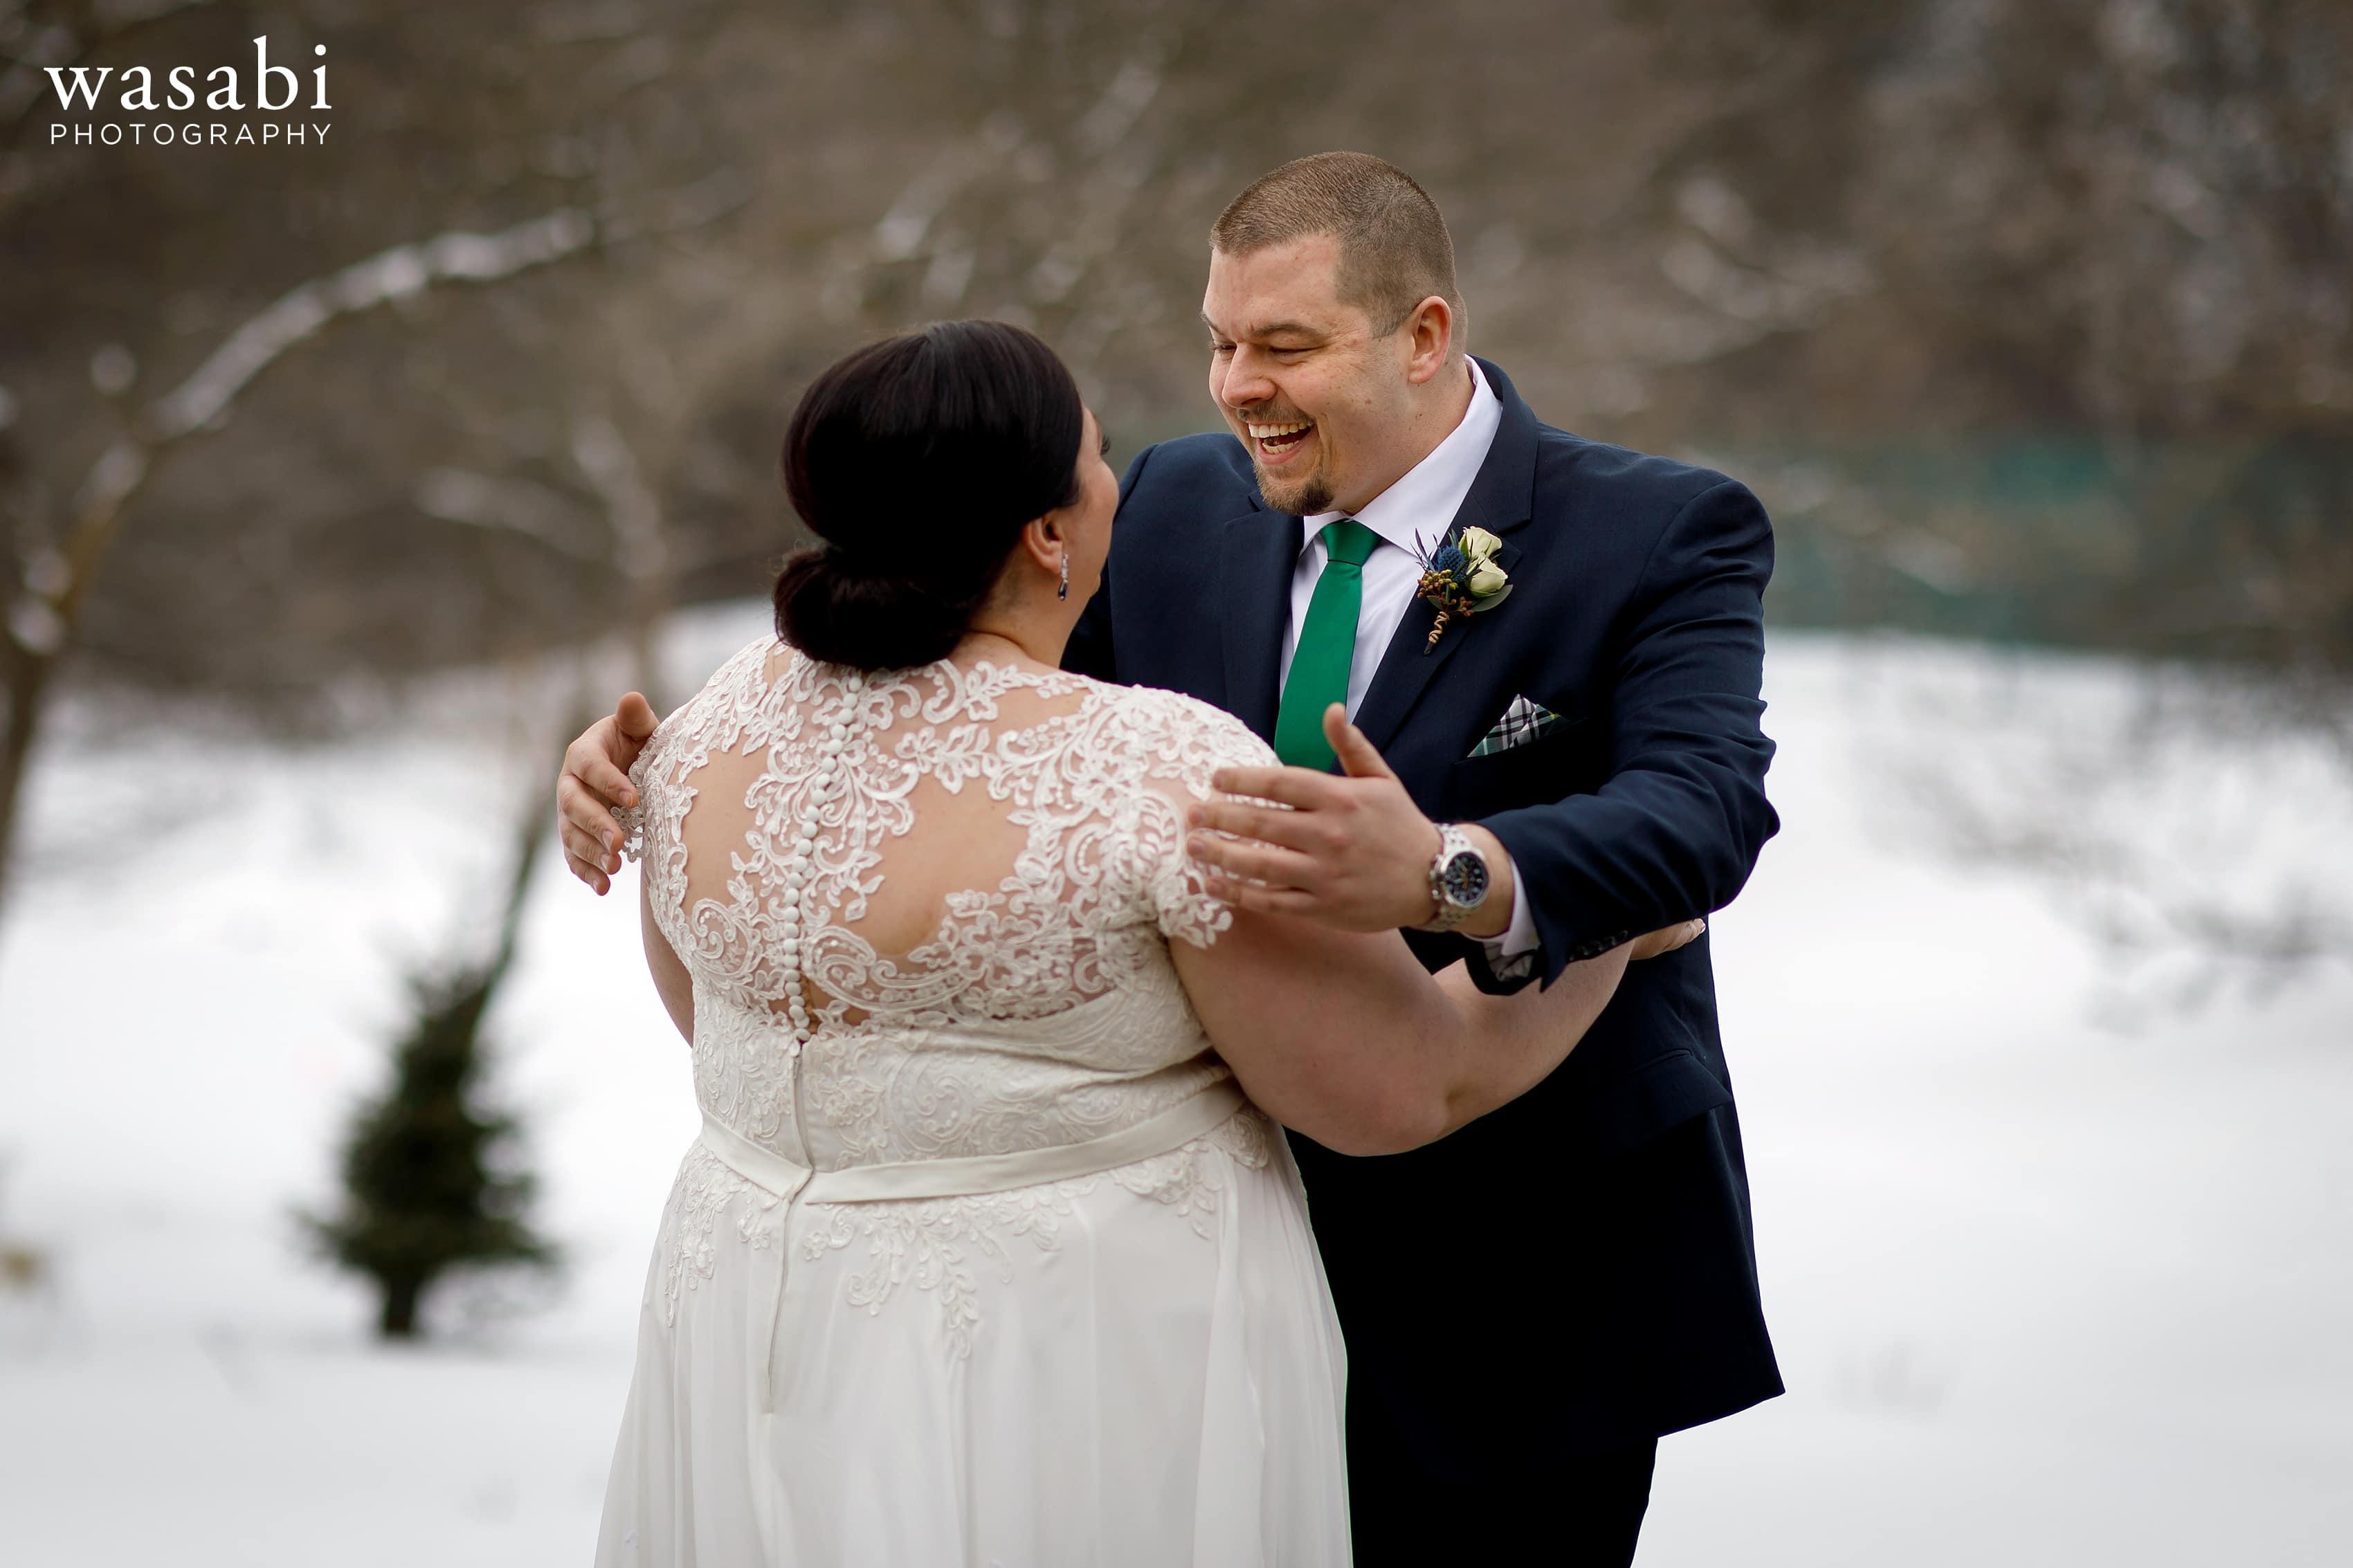 groom reacts to seeing bride for the first time during a first look with snow in the background